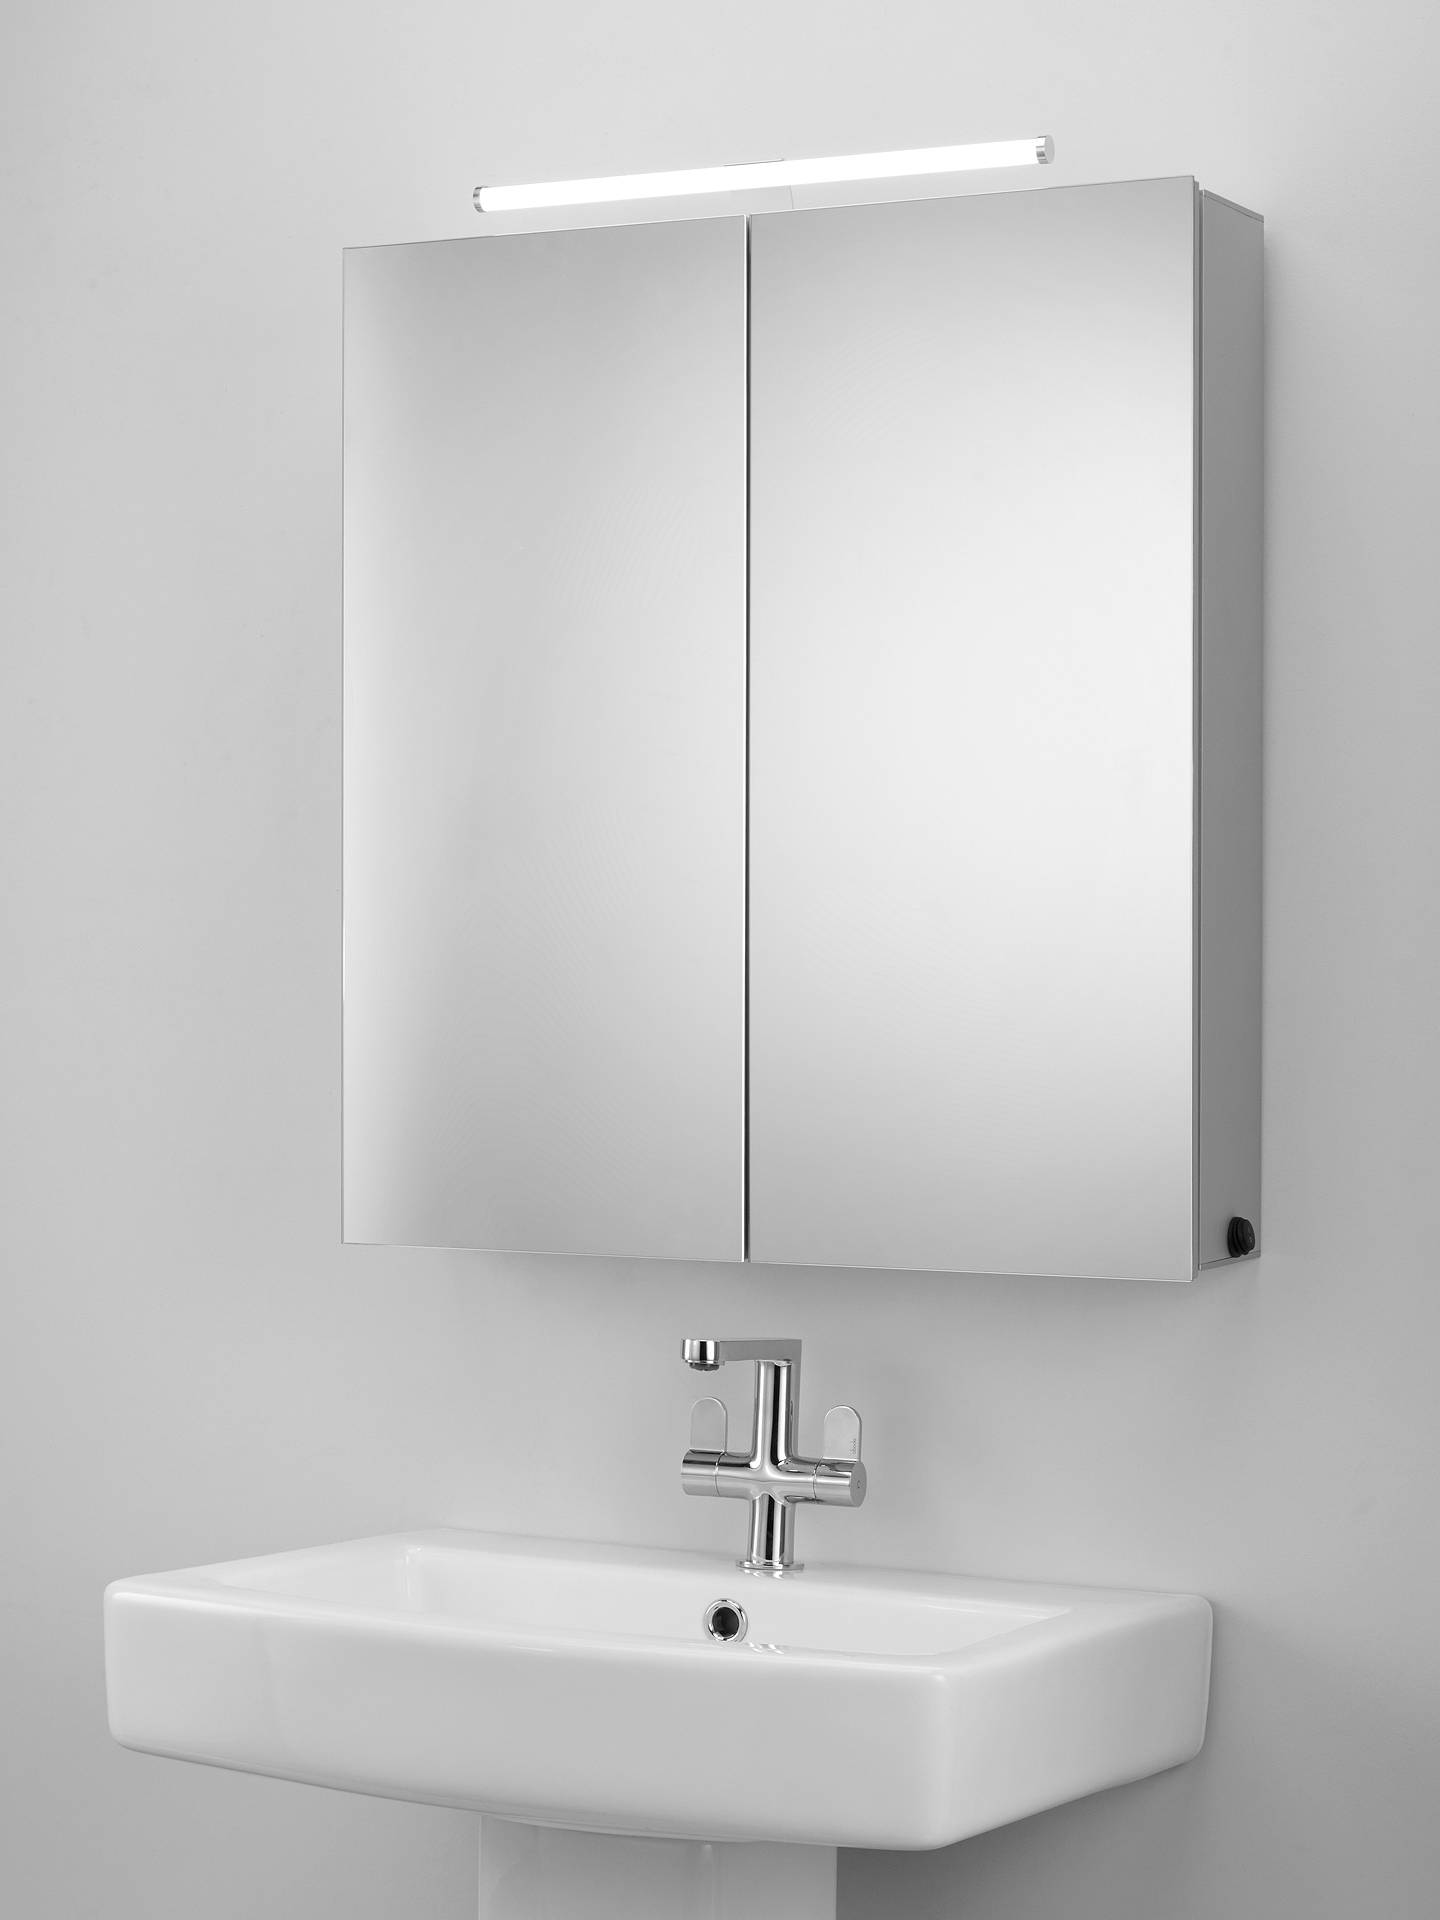 John Lewis Partners Debut Double Mirrored Illuminated Bathroom Cabinet Online At Johnlewis